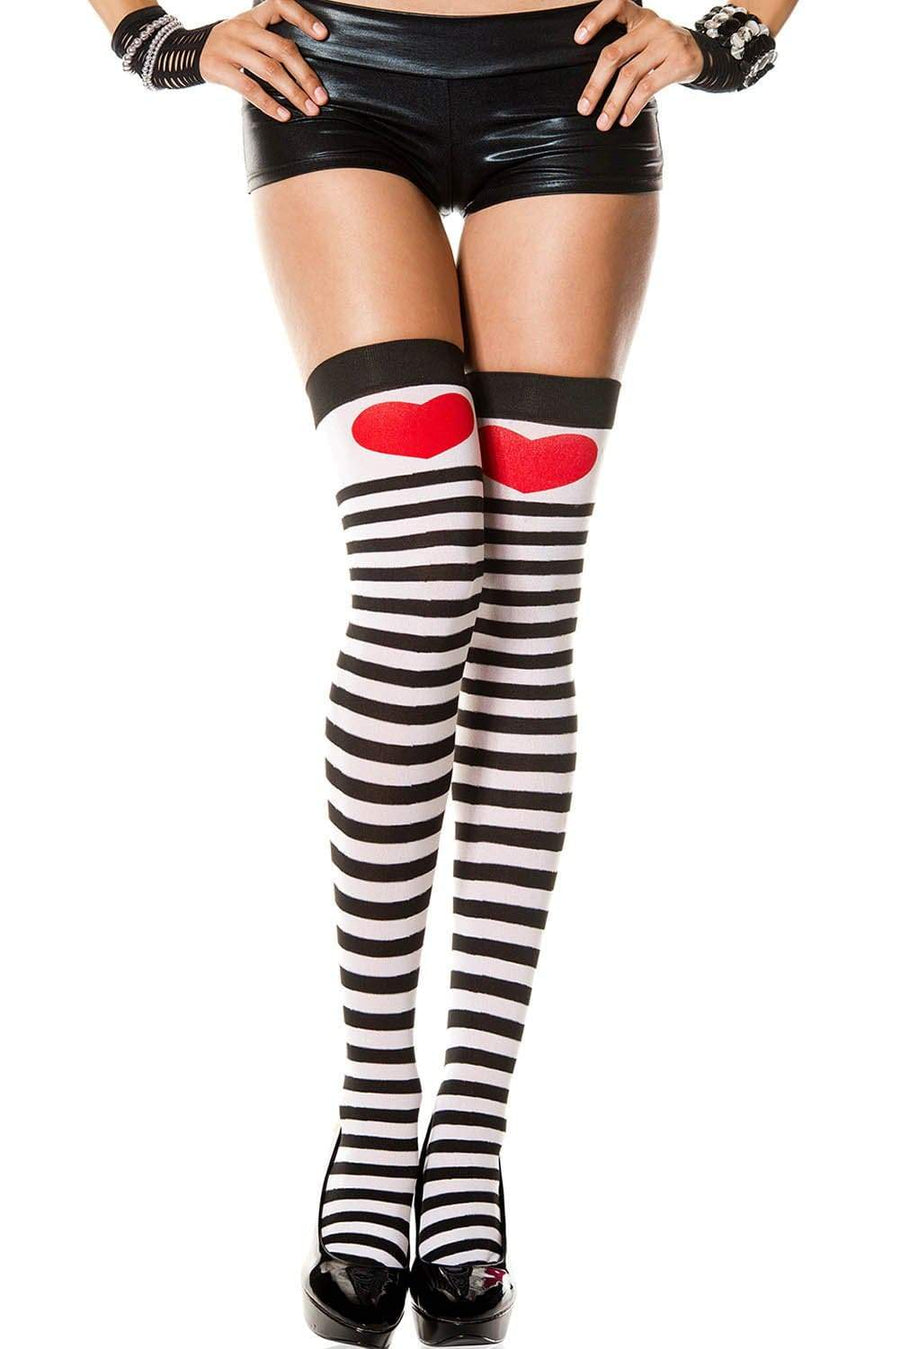 SoHot Clubwear Print / One Size Black & White Stripe w/ Red Heart Thigh High Stockings SHC-6315-LA Harlequin & Heart Thigh High Costume Stockings | Leg Avenue 6315 Apparel & Accessories > Clothing > Pants